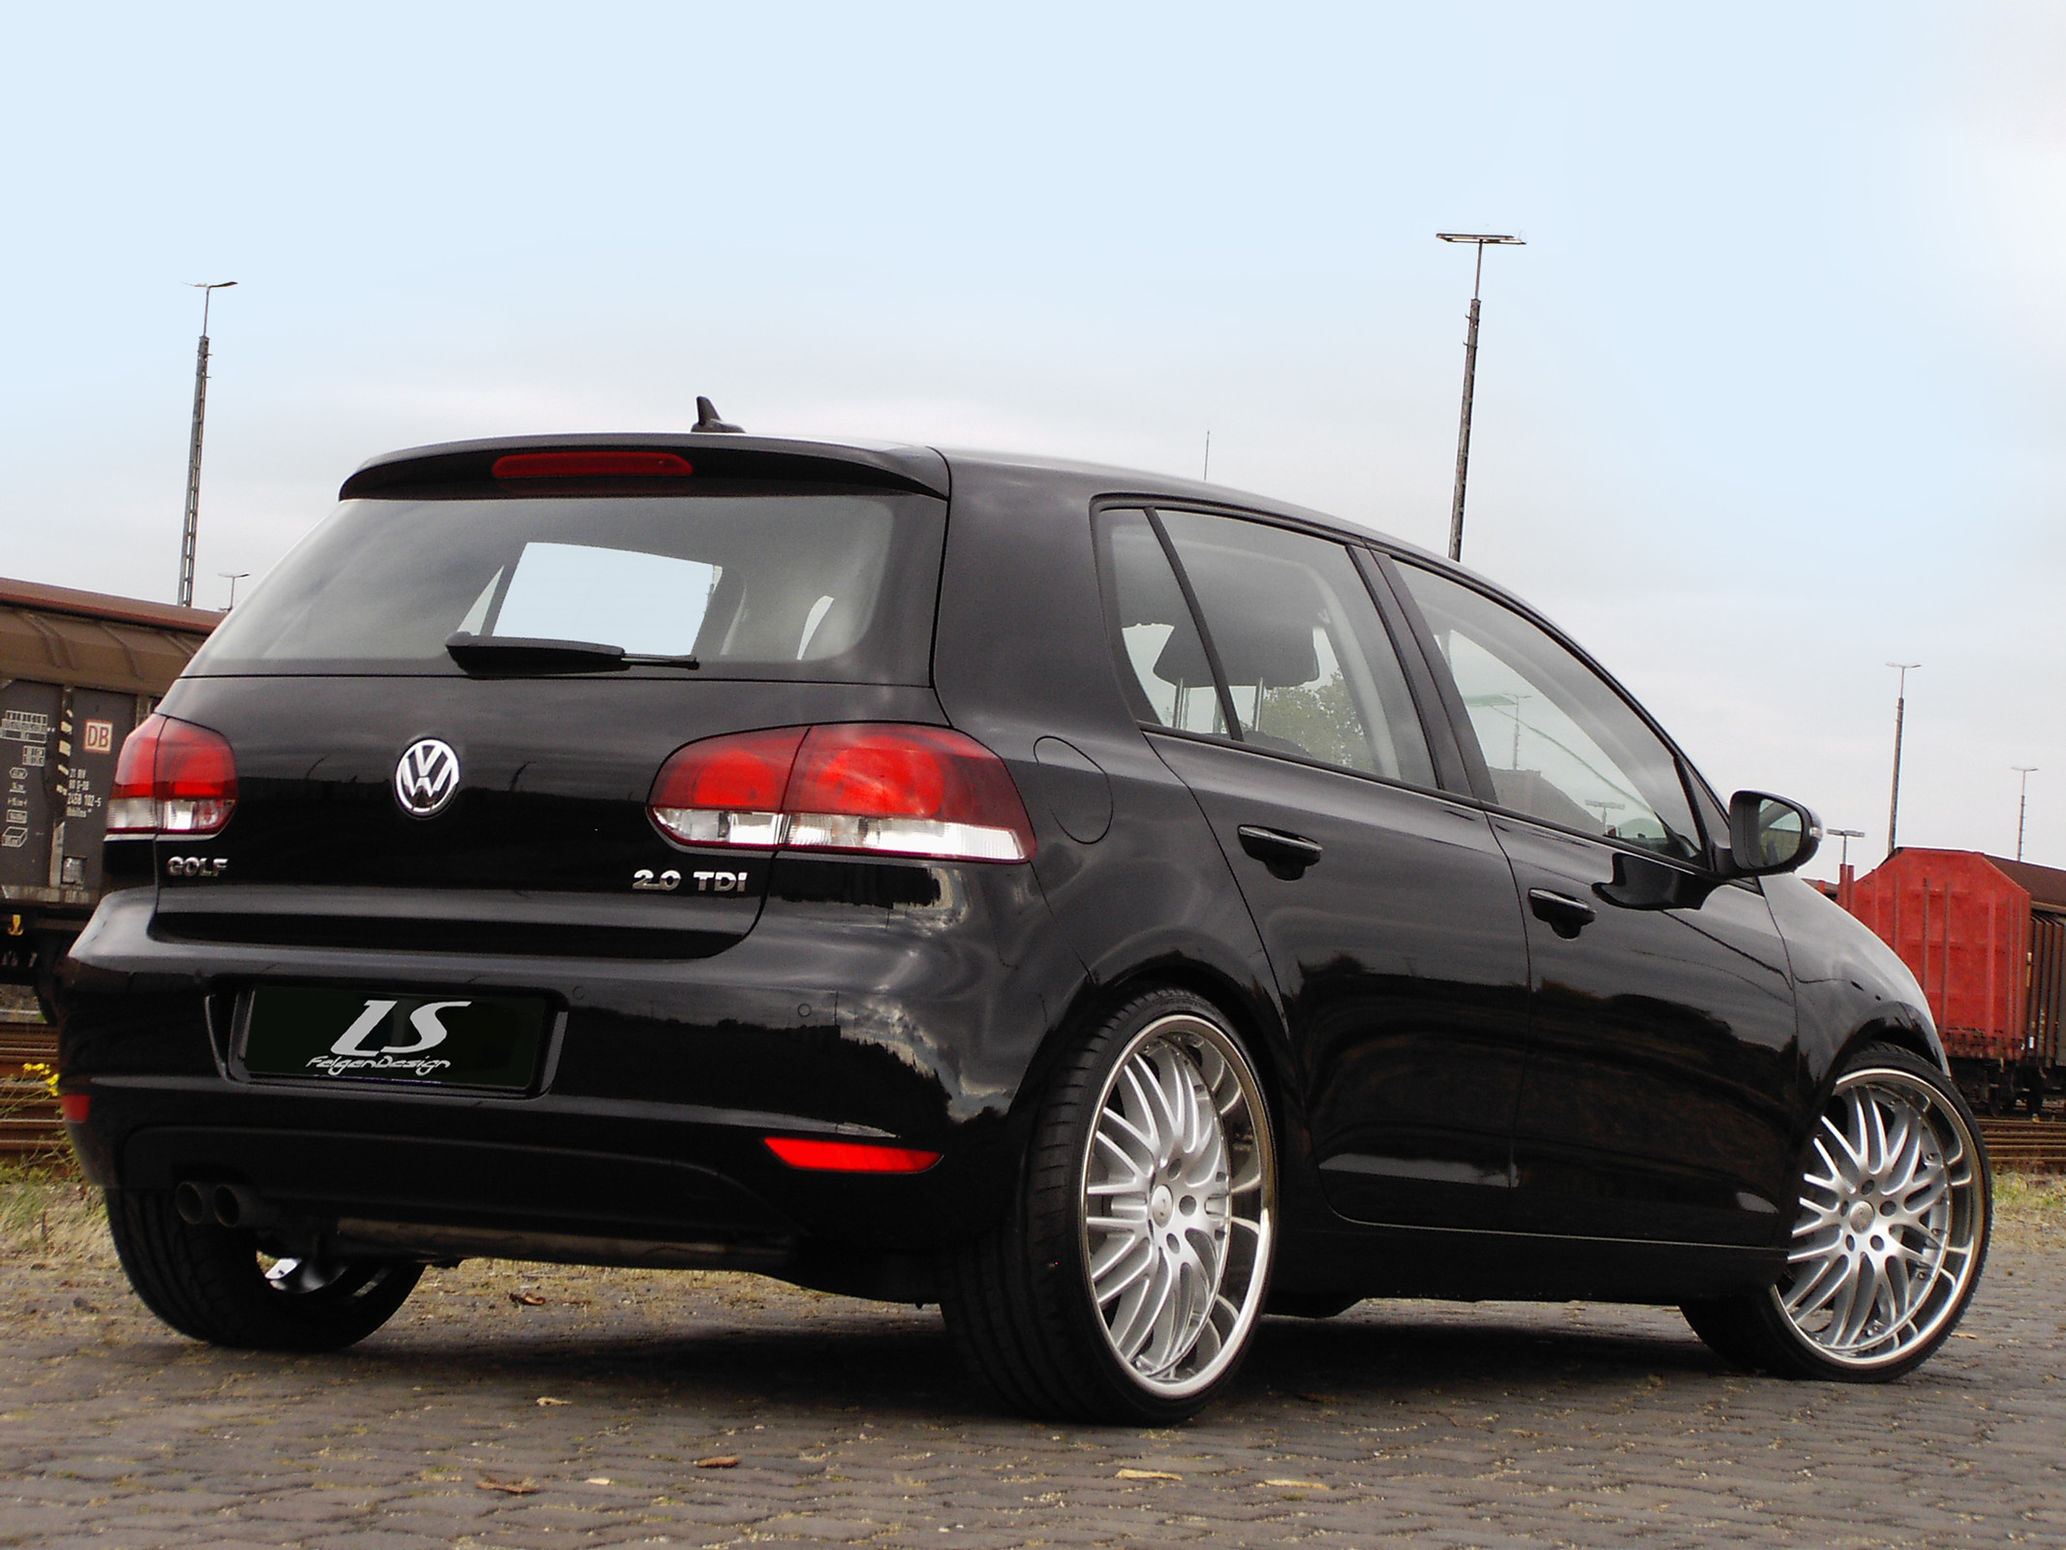 news alufelgen vw golf 6 7 mit 20zoll alufelgen. Black Bedroom Furniture Sets. Home Design Ideas